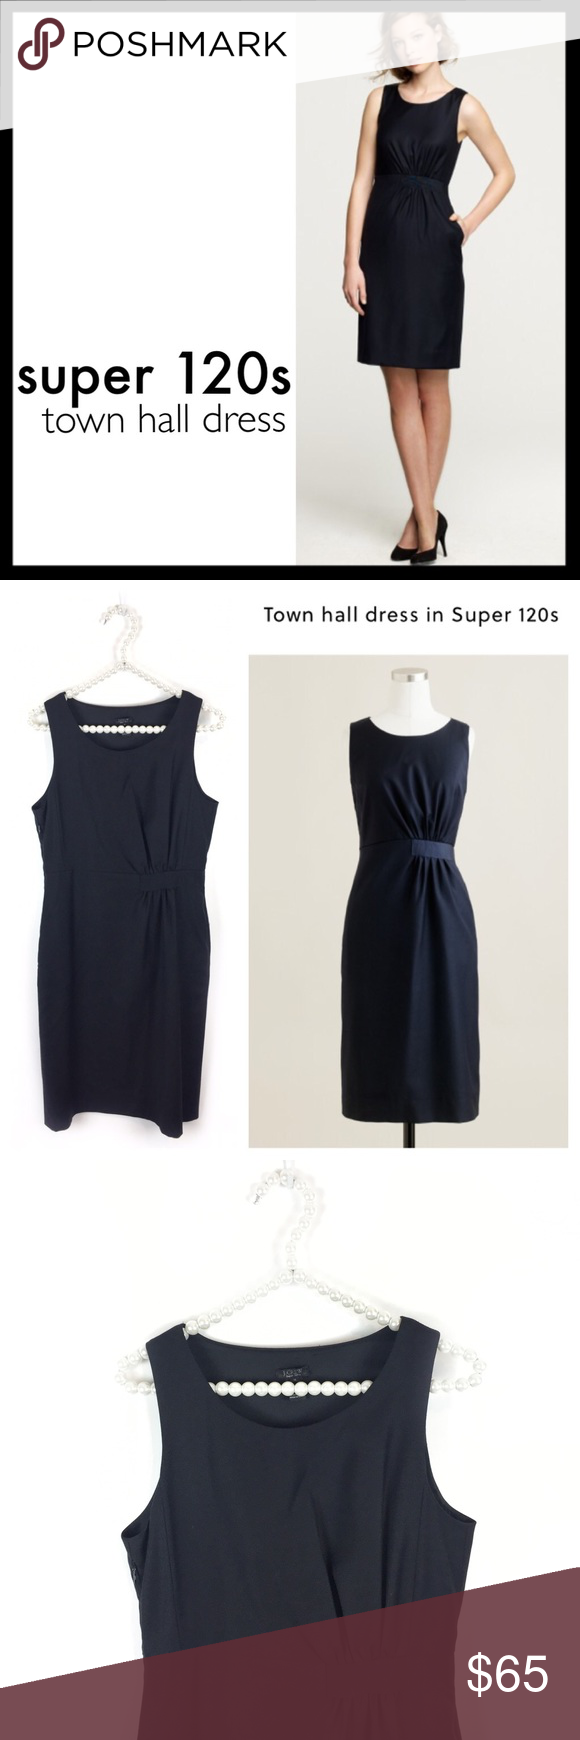 j. crew // super 120s wool town hall dress • black A flourish of grosgrain ribbon gathers halfway around the waist, adding a flattering edge to our newest desk- to-dinner dress. Beautifully styled in our four-season Super 120s wool. Lined. Excellent condition. J. Crew Dresses Midi